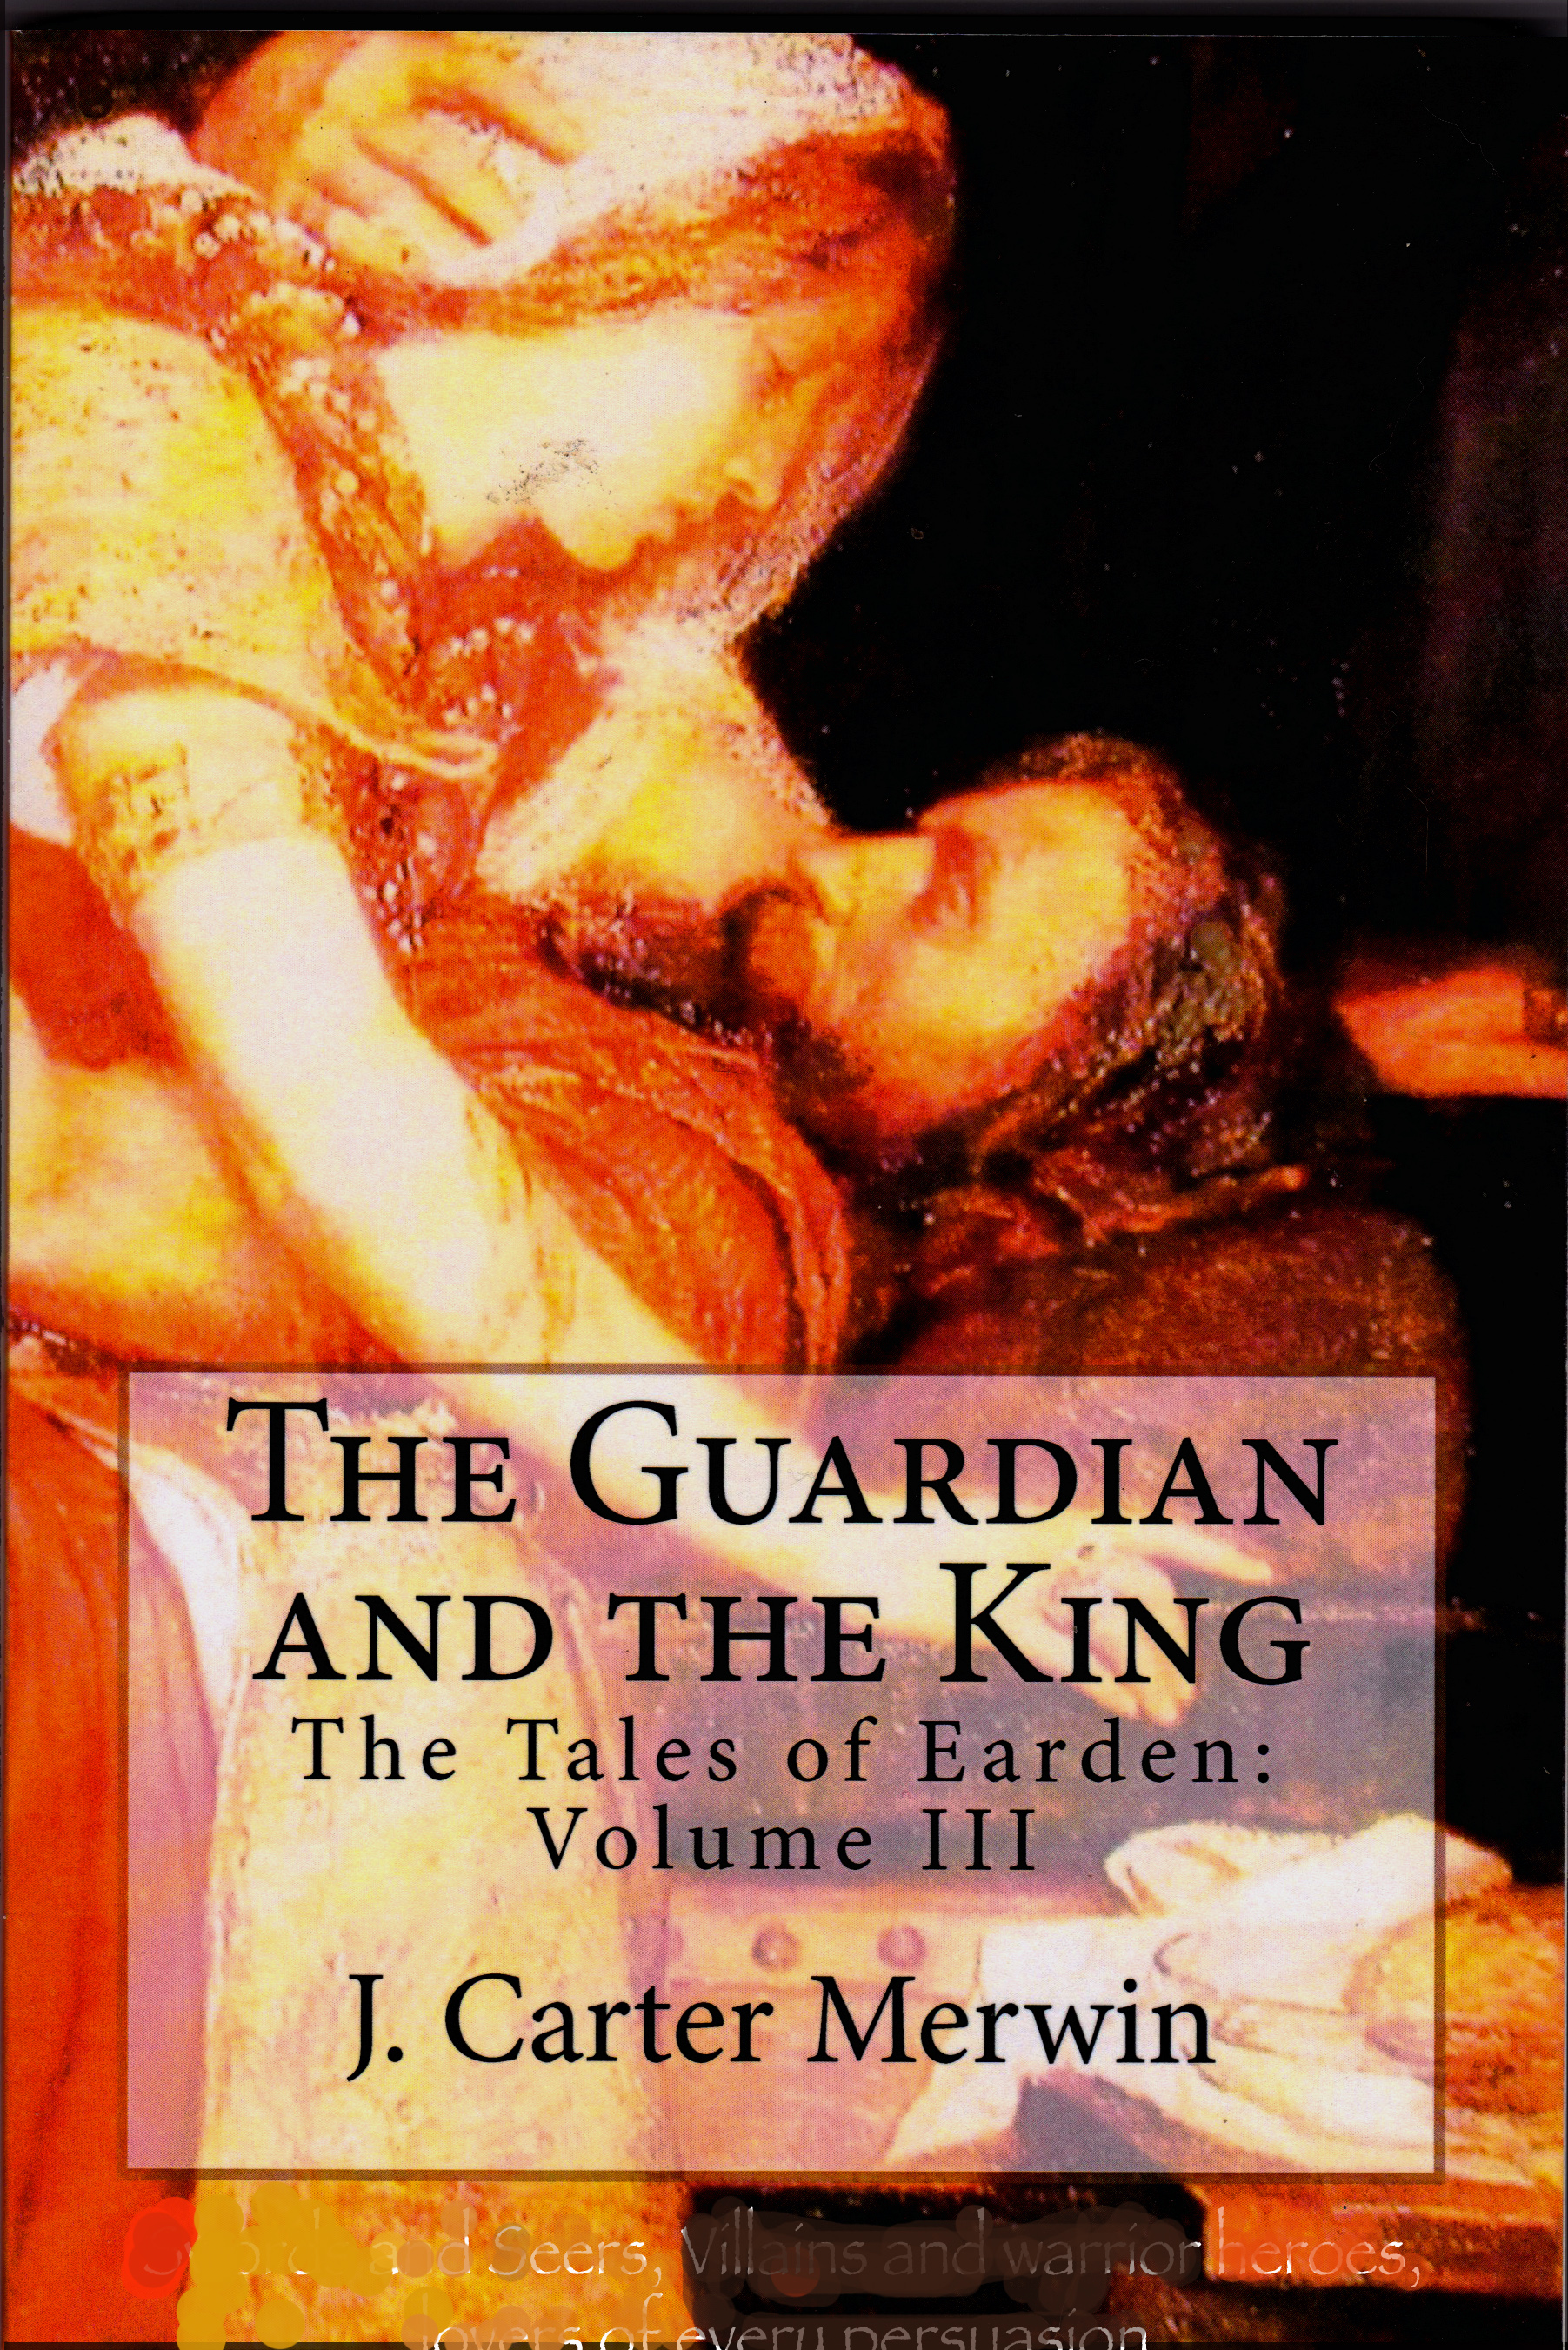 The Guardian and The King - J Carter Merwin